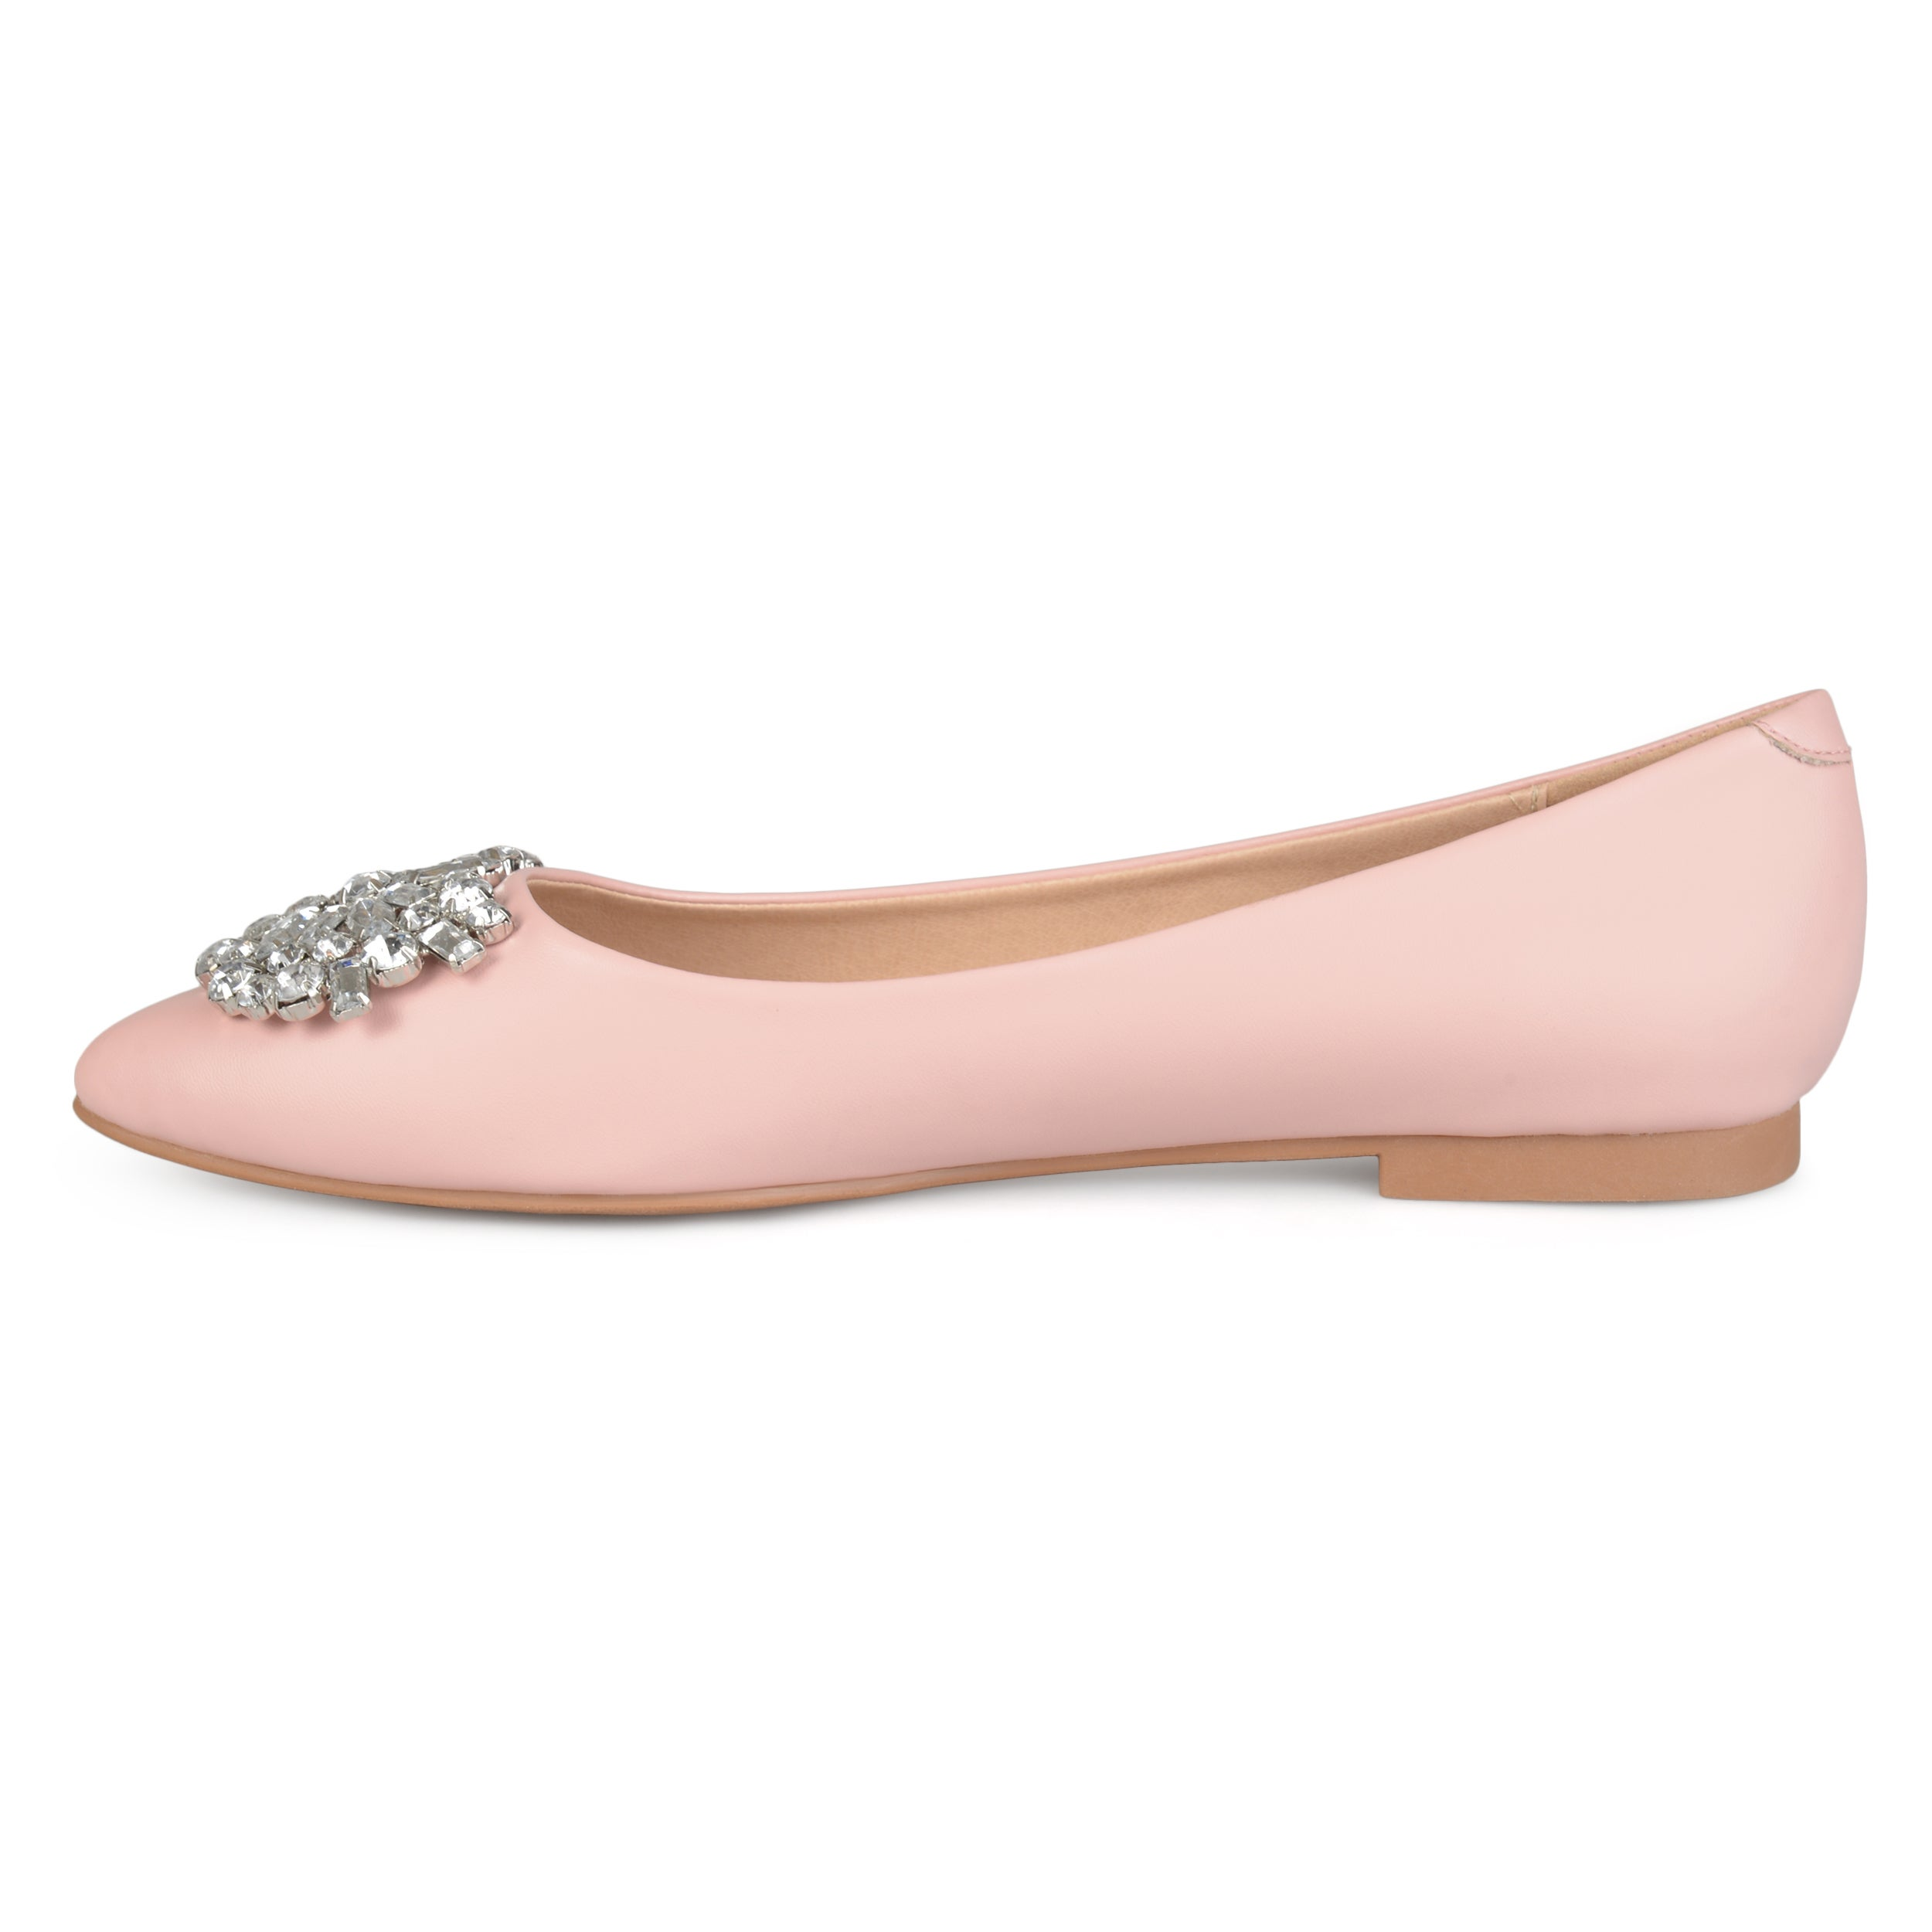 baf76df7faad6 Shop Journee Collection Women's 'Renzo' Pointed Toe Jewel Faux Leather Flats  - Free Shipping On Orders Over $45 - Overstock - 16747865